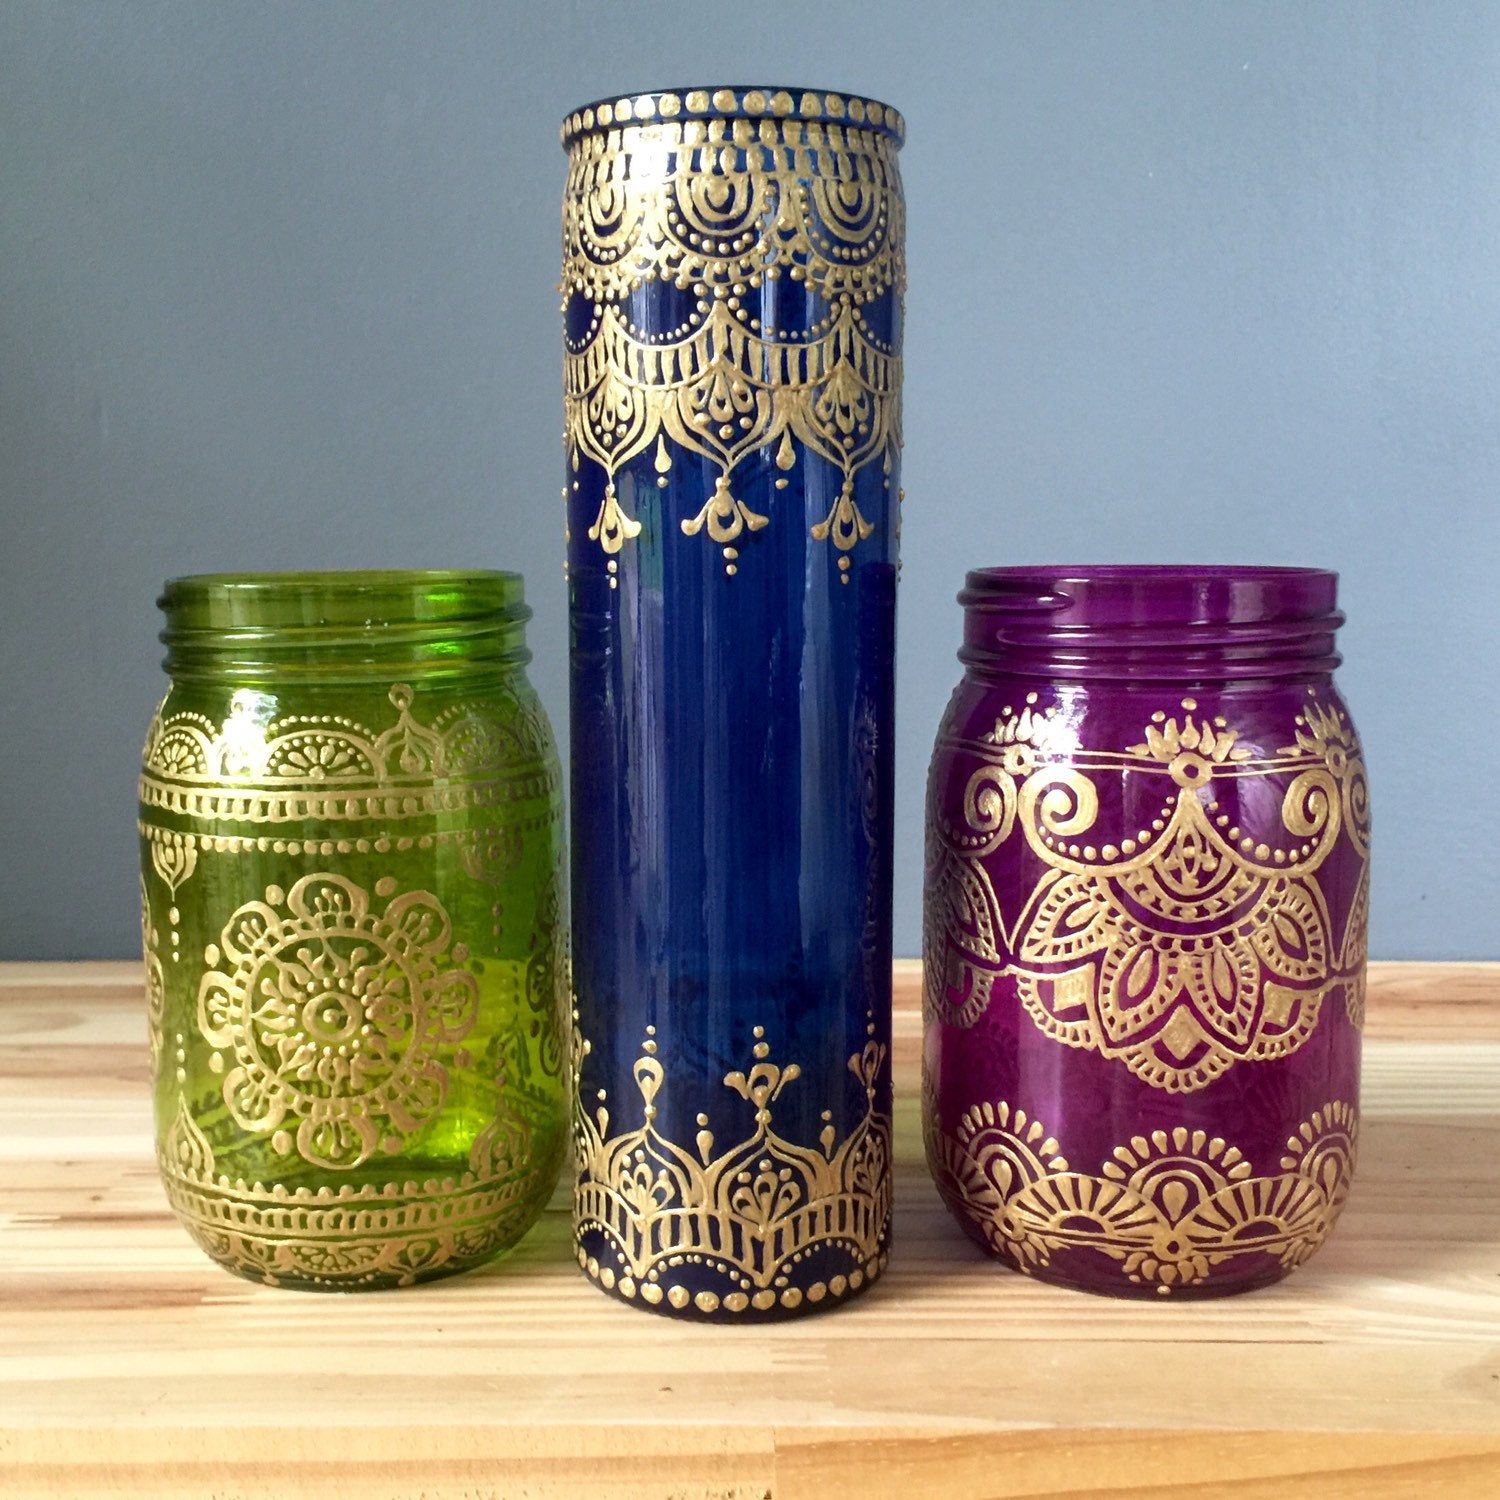 Henna style cobalt blue glass bud vases with bohemian designs henna style cobalt blue glass bud vases with bohemian designs reviewsmspy